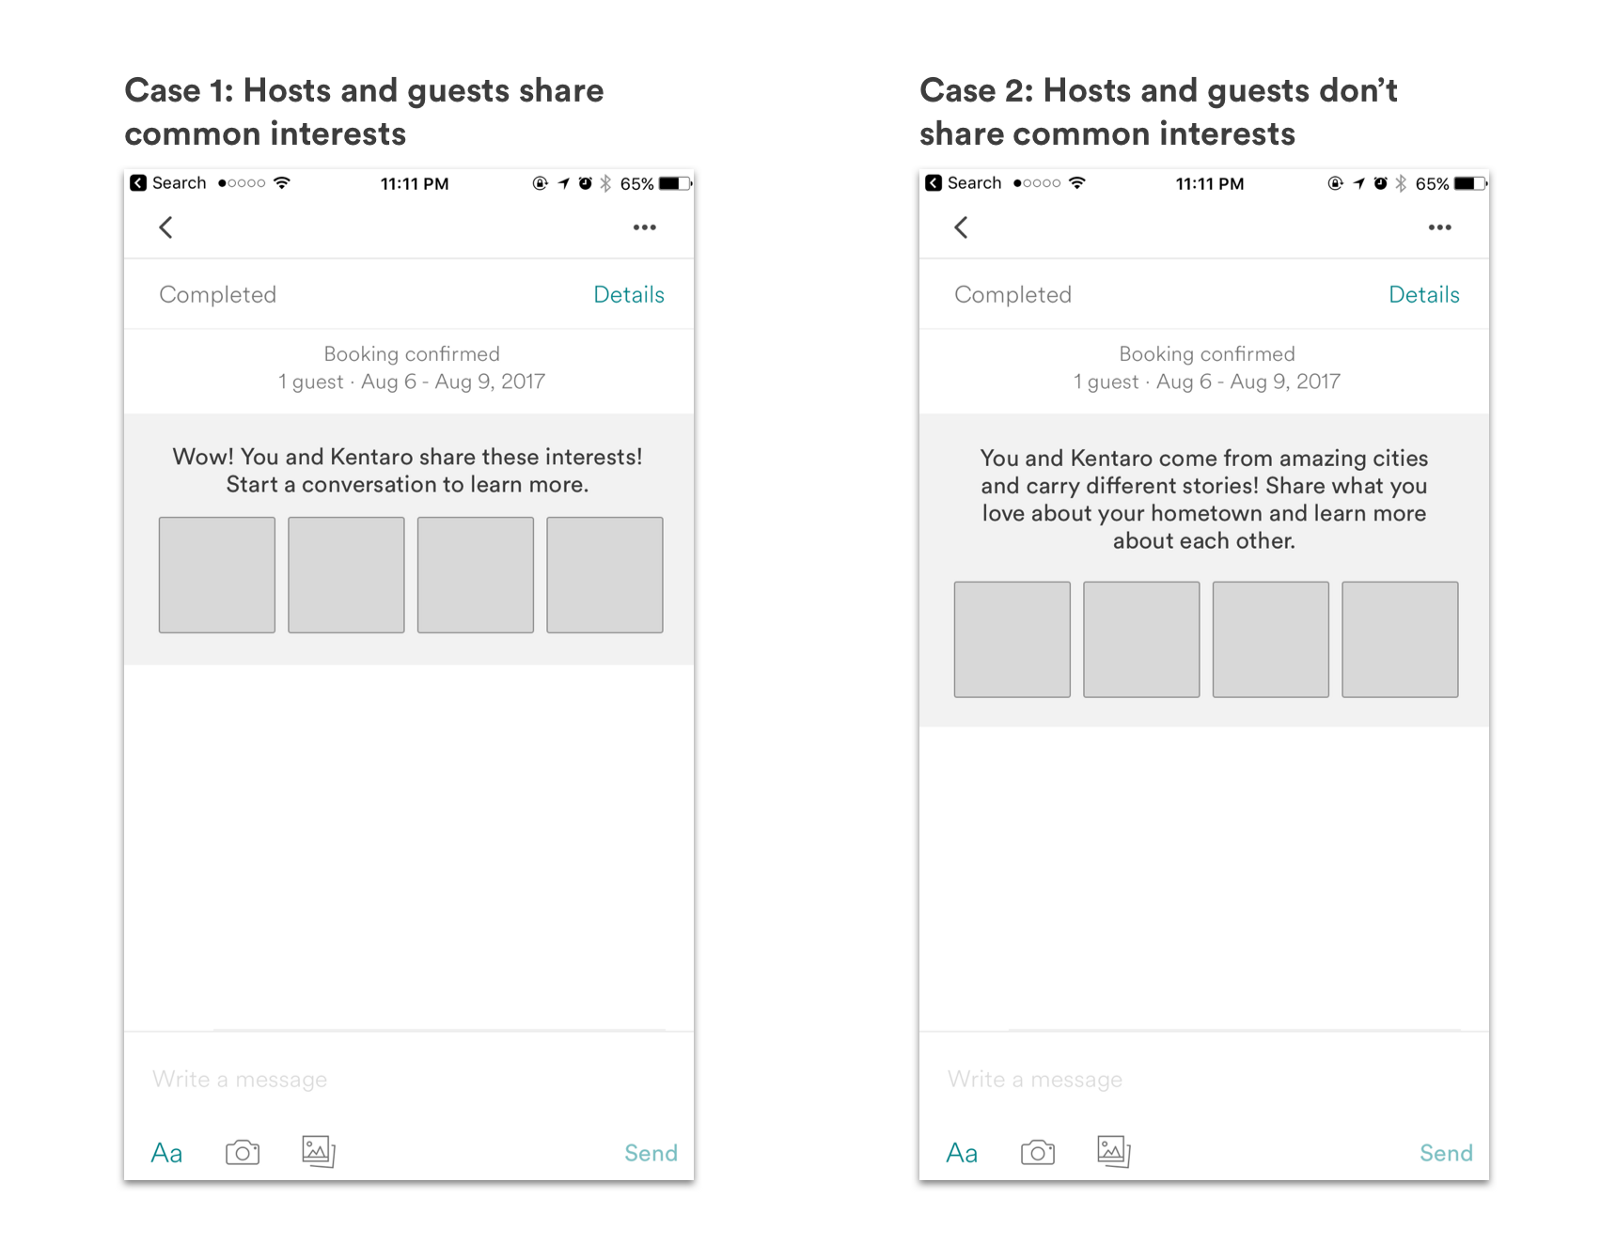 Medium Fidelity Wireframes of Situations Where Their Interests Matched and Don't